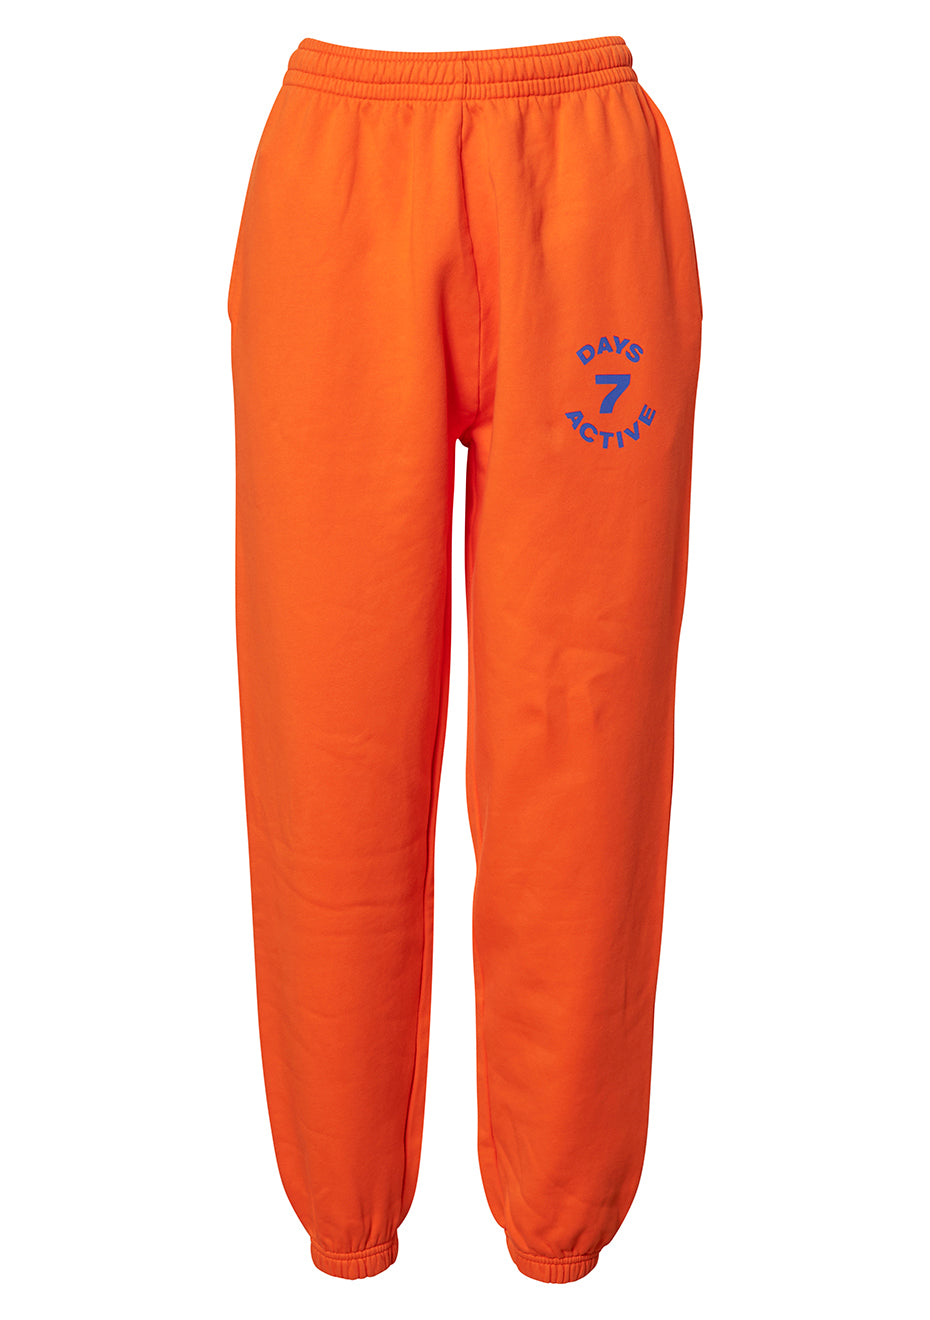 Orange Monday Pants